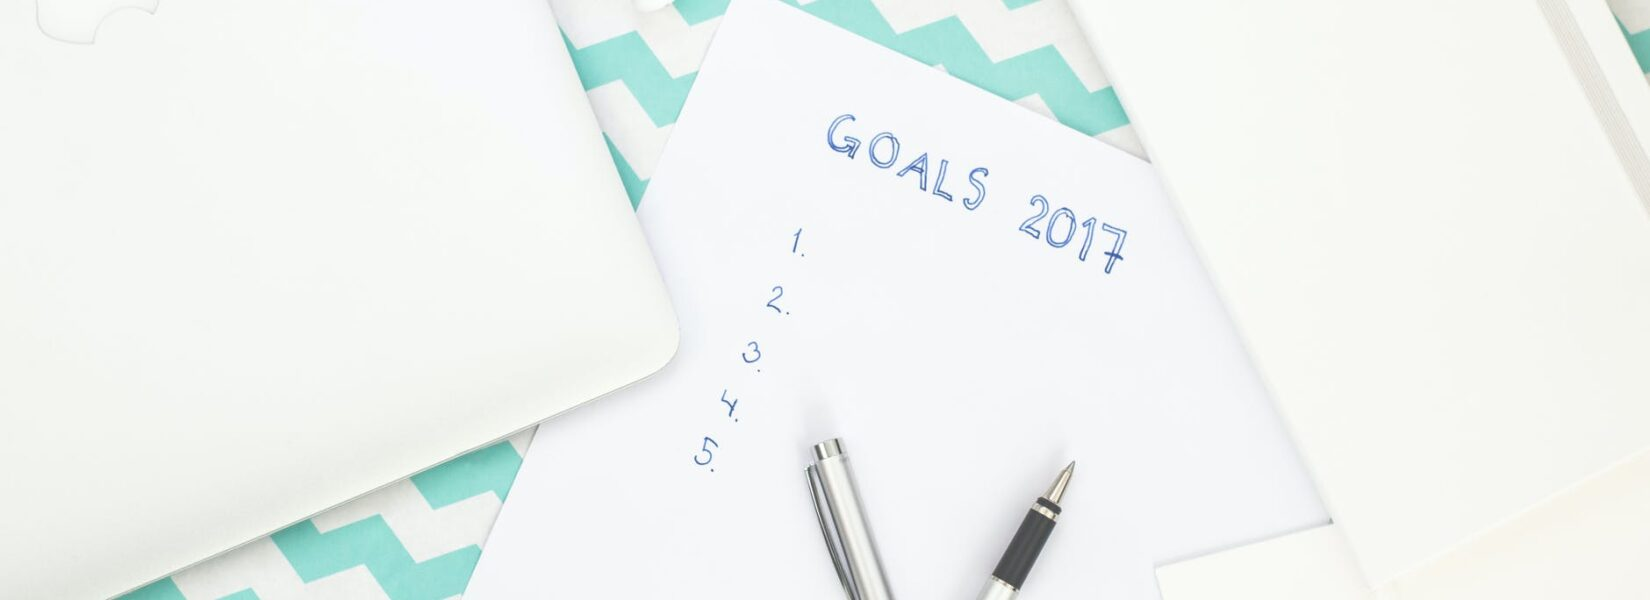 8 Personal Finance Goals You can Accomplish This Year